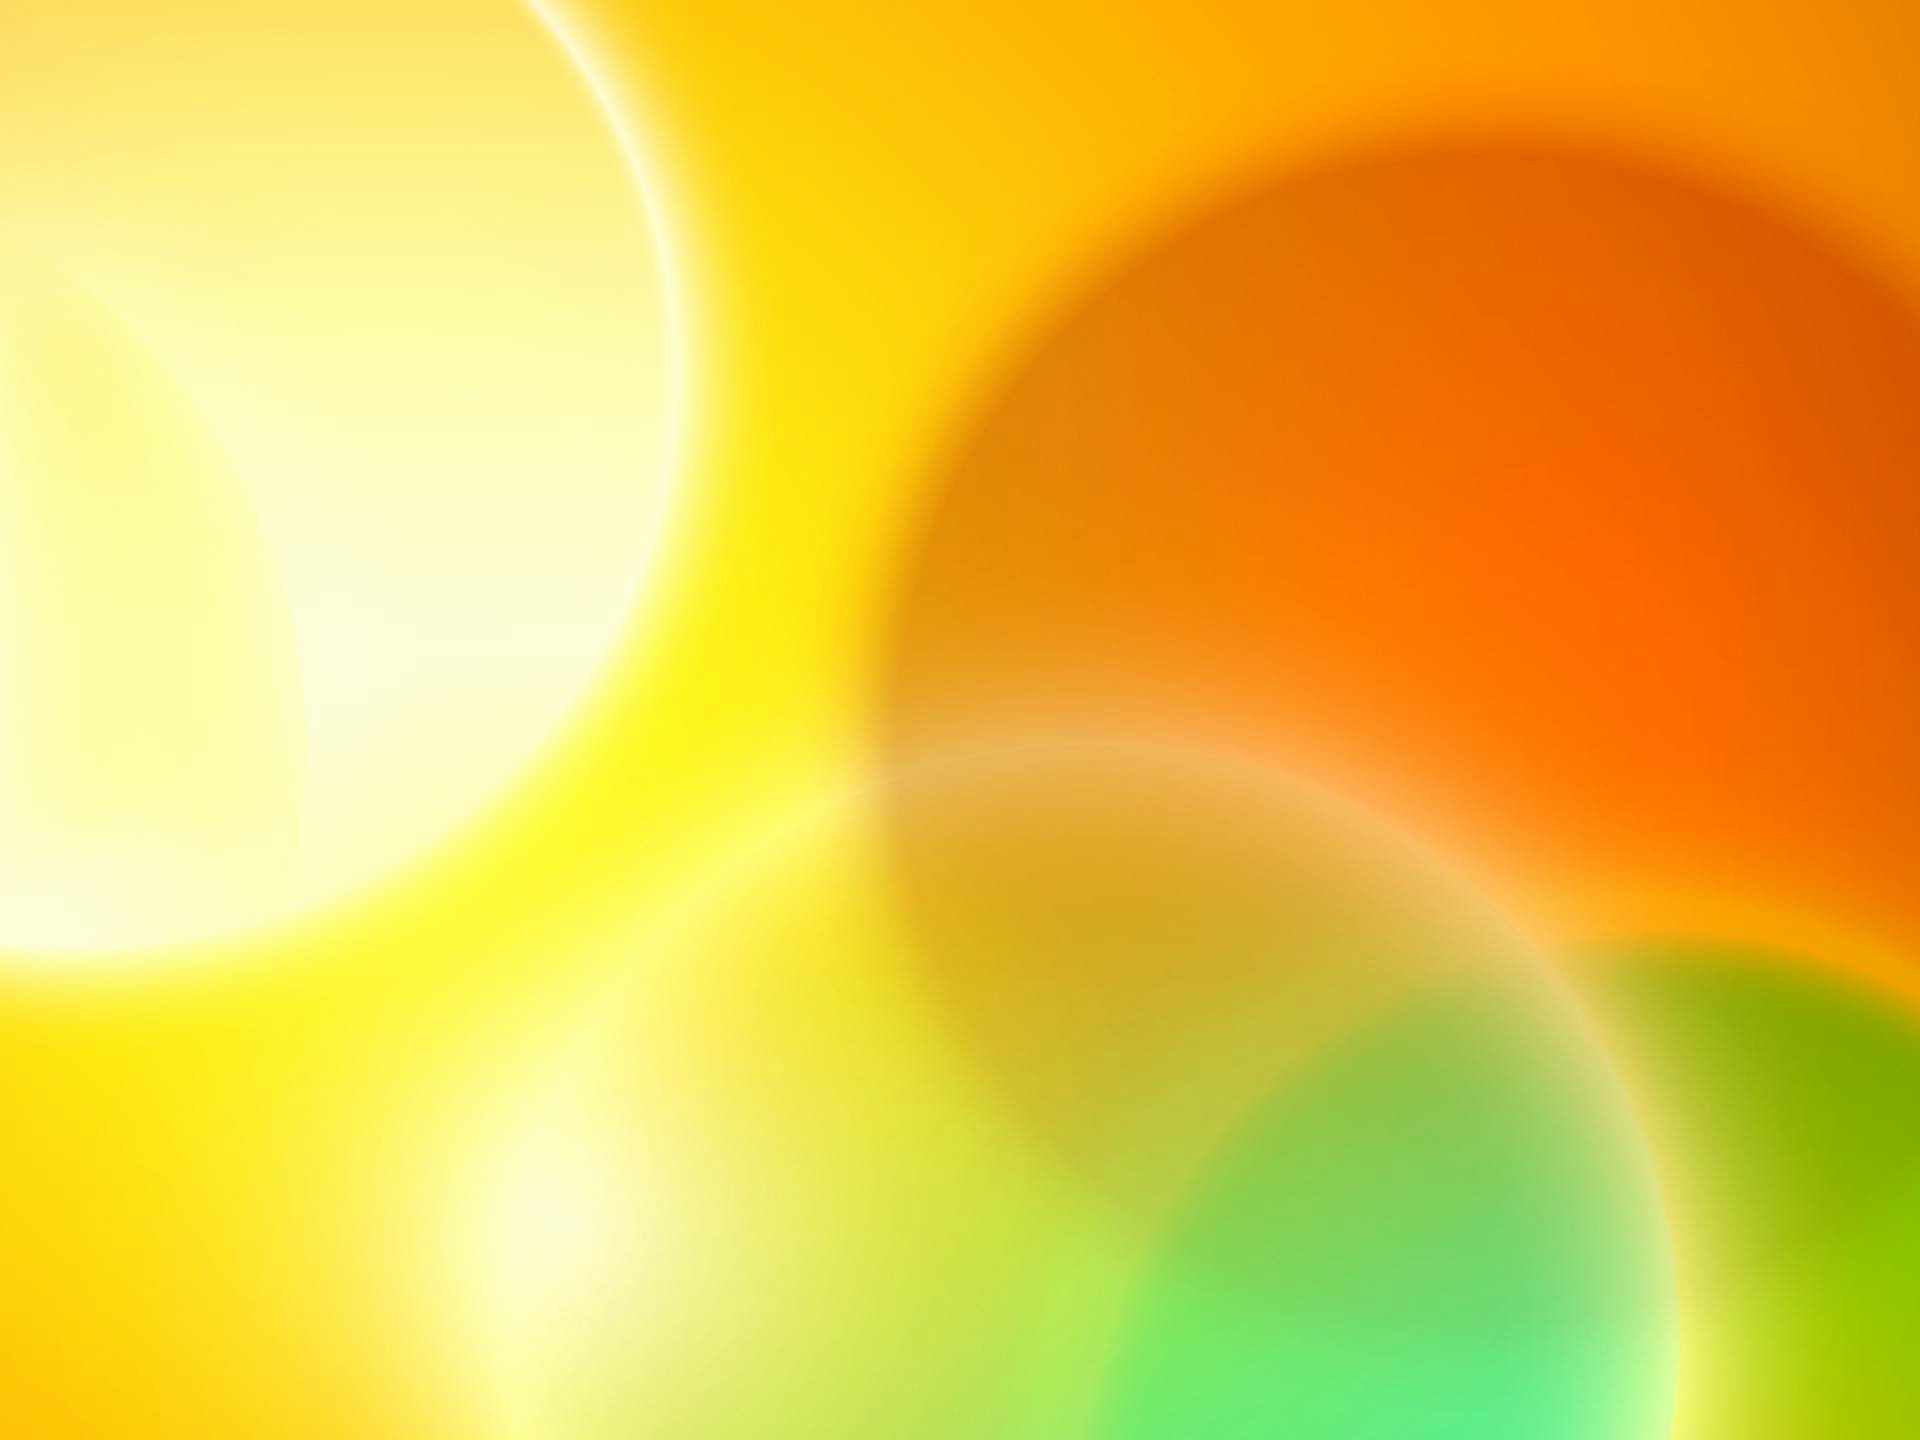 Color Powerpoint Template and Color Backgrounds Wallpaper Cave